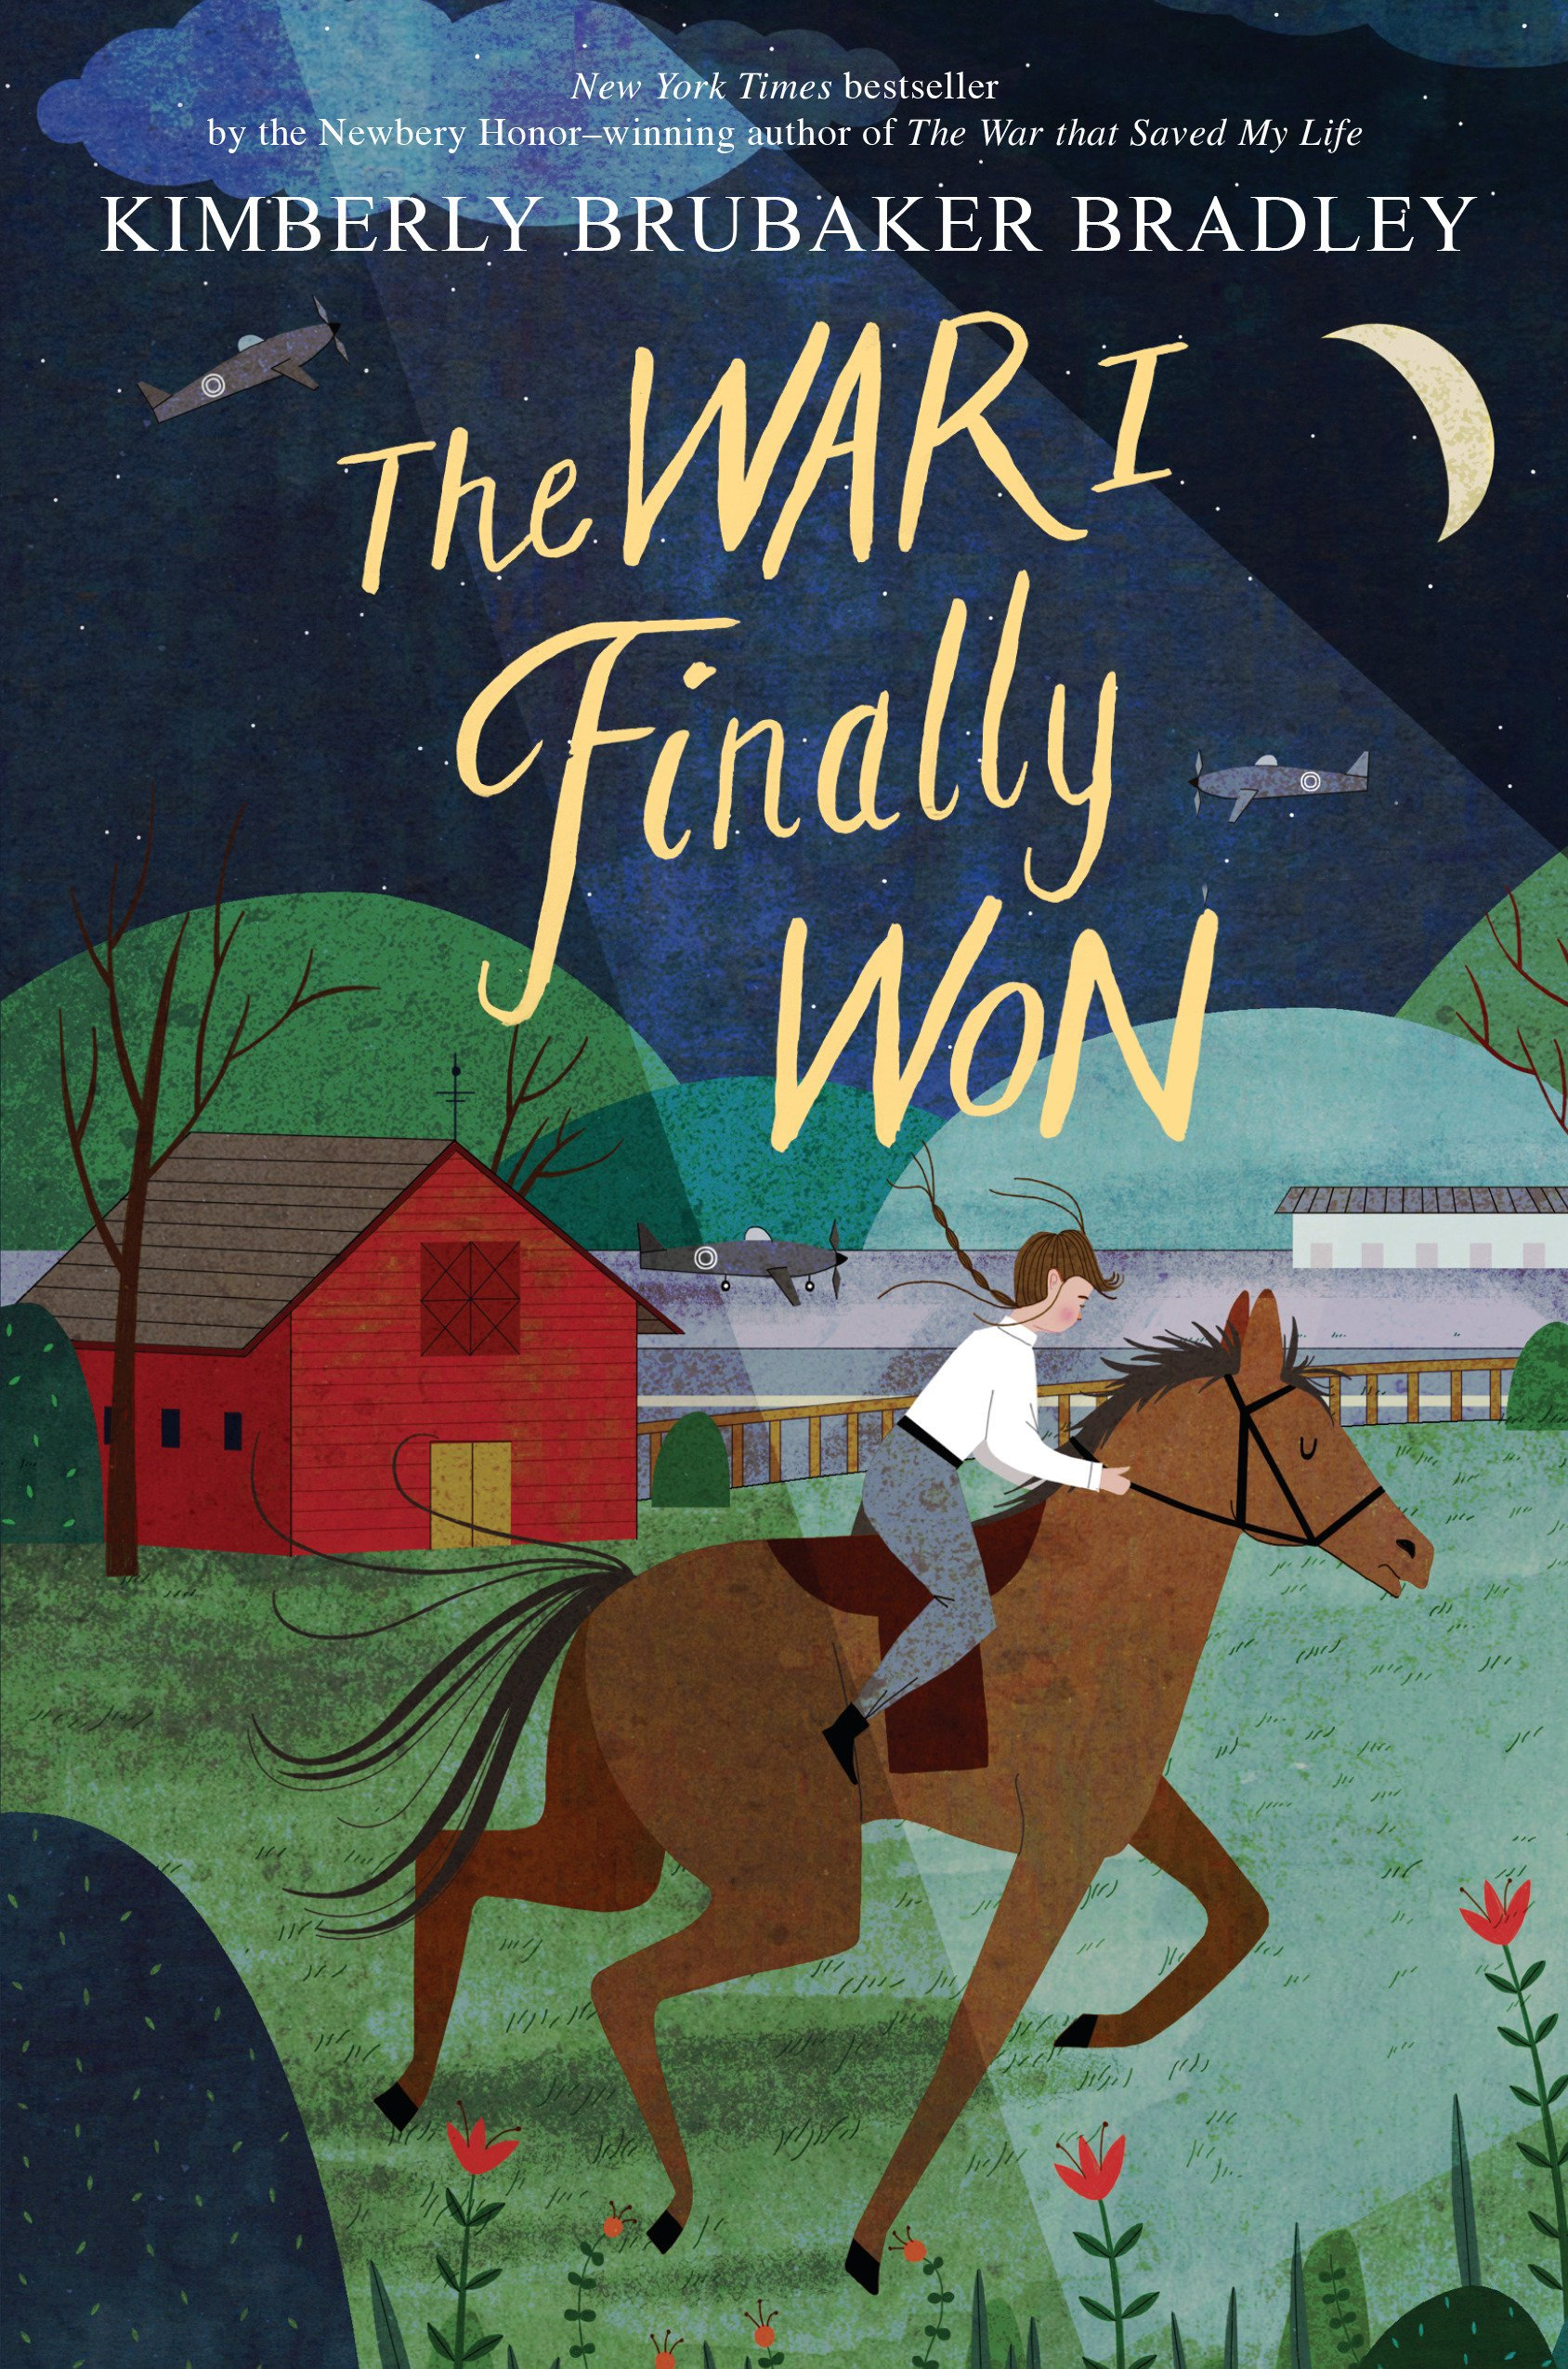 The War I Finally Won: Bradley, Kimberly Brubaker: 9780525429203 ...